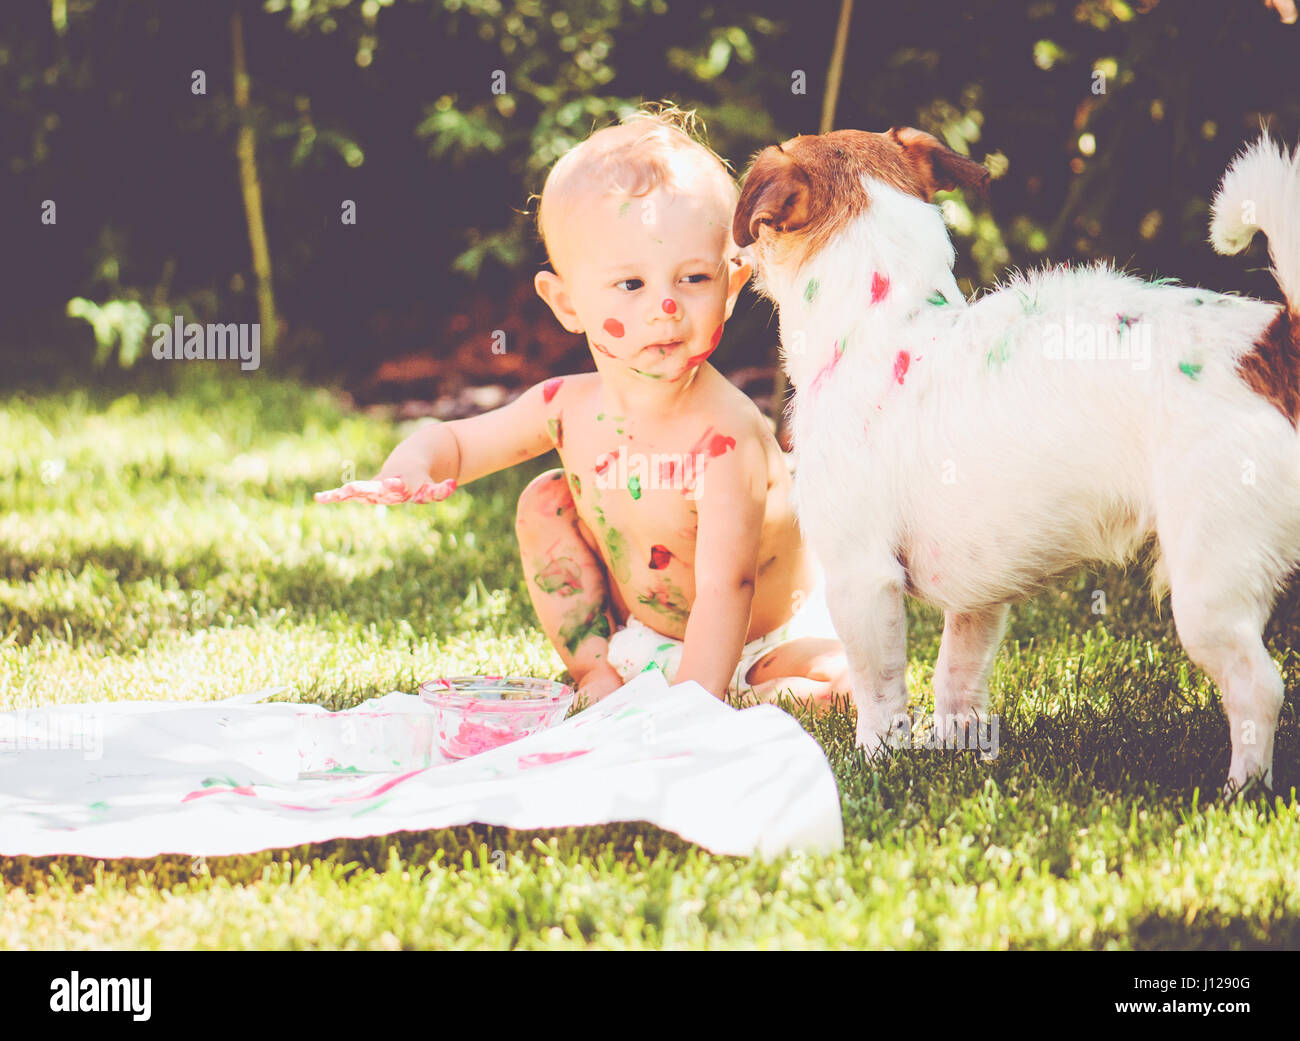 1 year old baby painting on his body and on dog - Stock Image